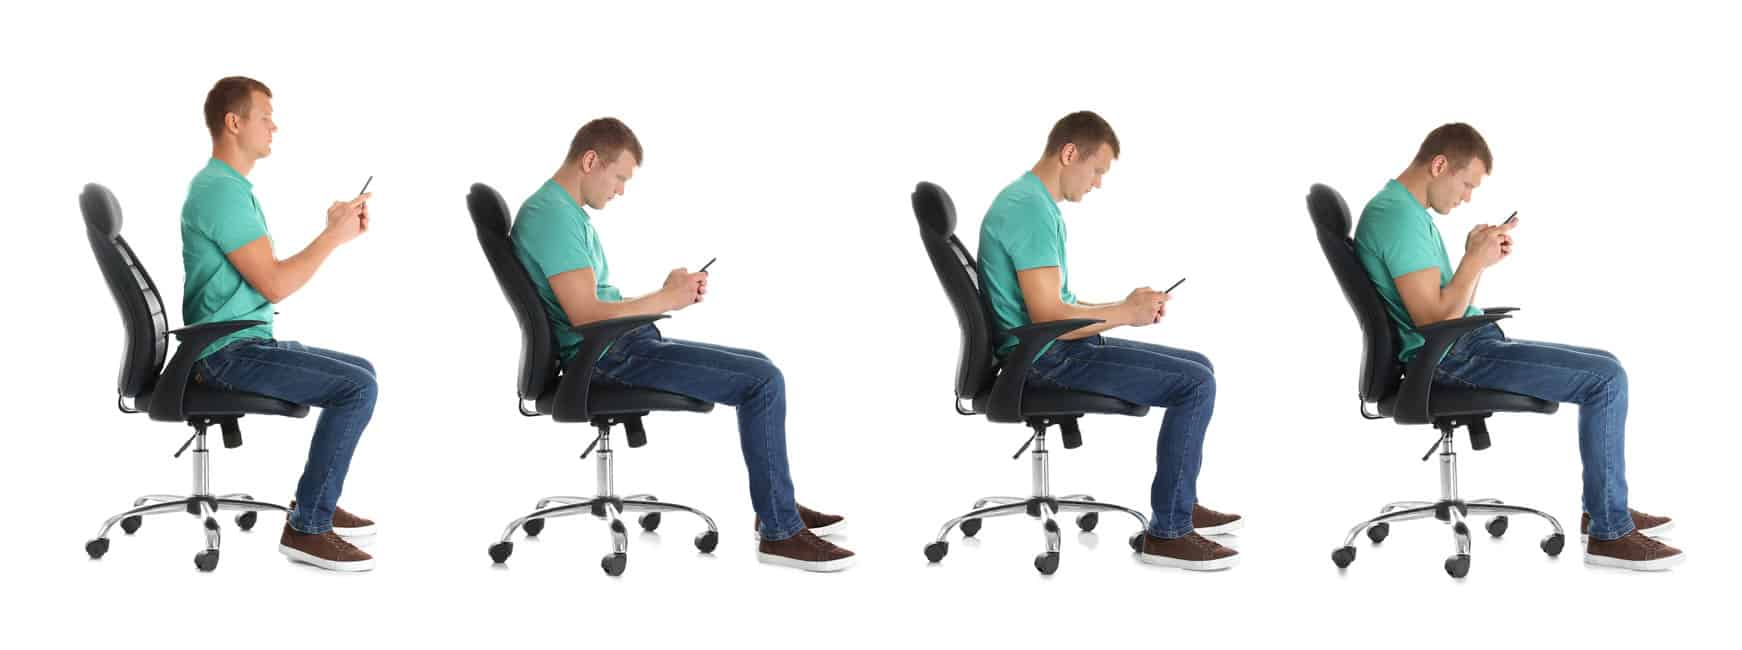 Diagram-of-how-poor-seating-posture-can-cause-neck-and-shoulder-pain-that-a-Physio-needs-to-treat-a-male